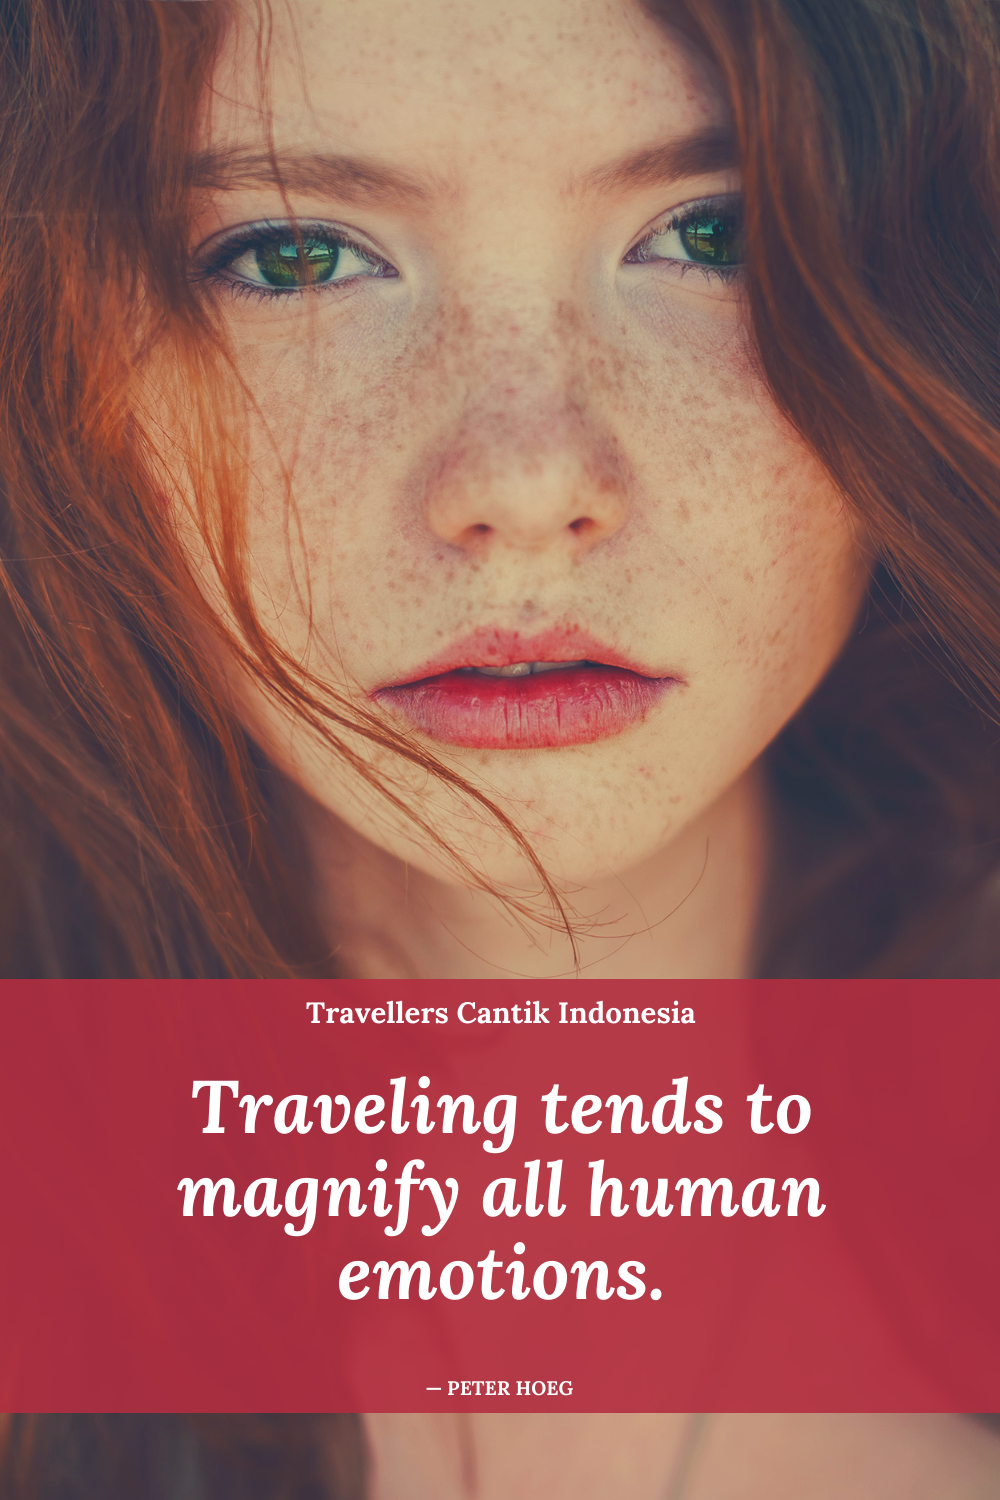 Traveling tends to magnify all human emotions.